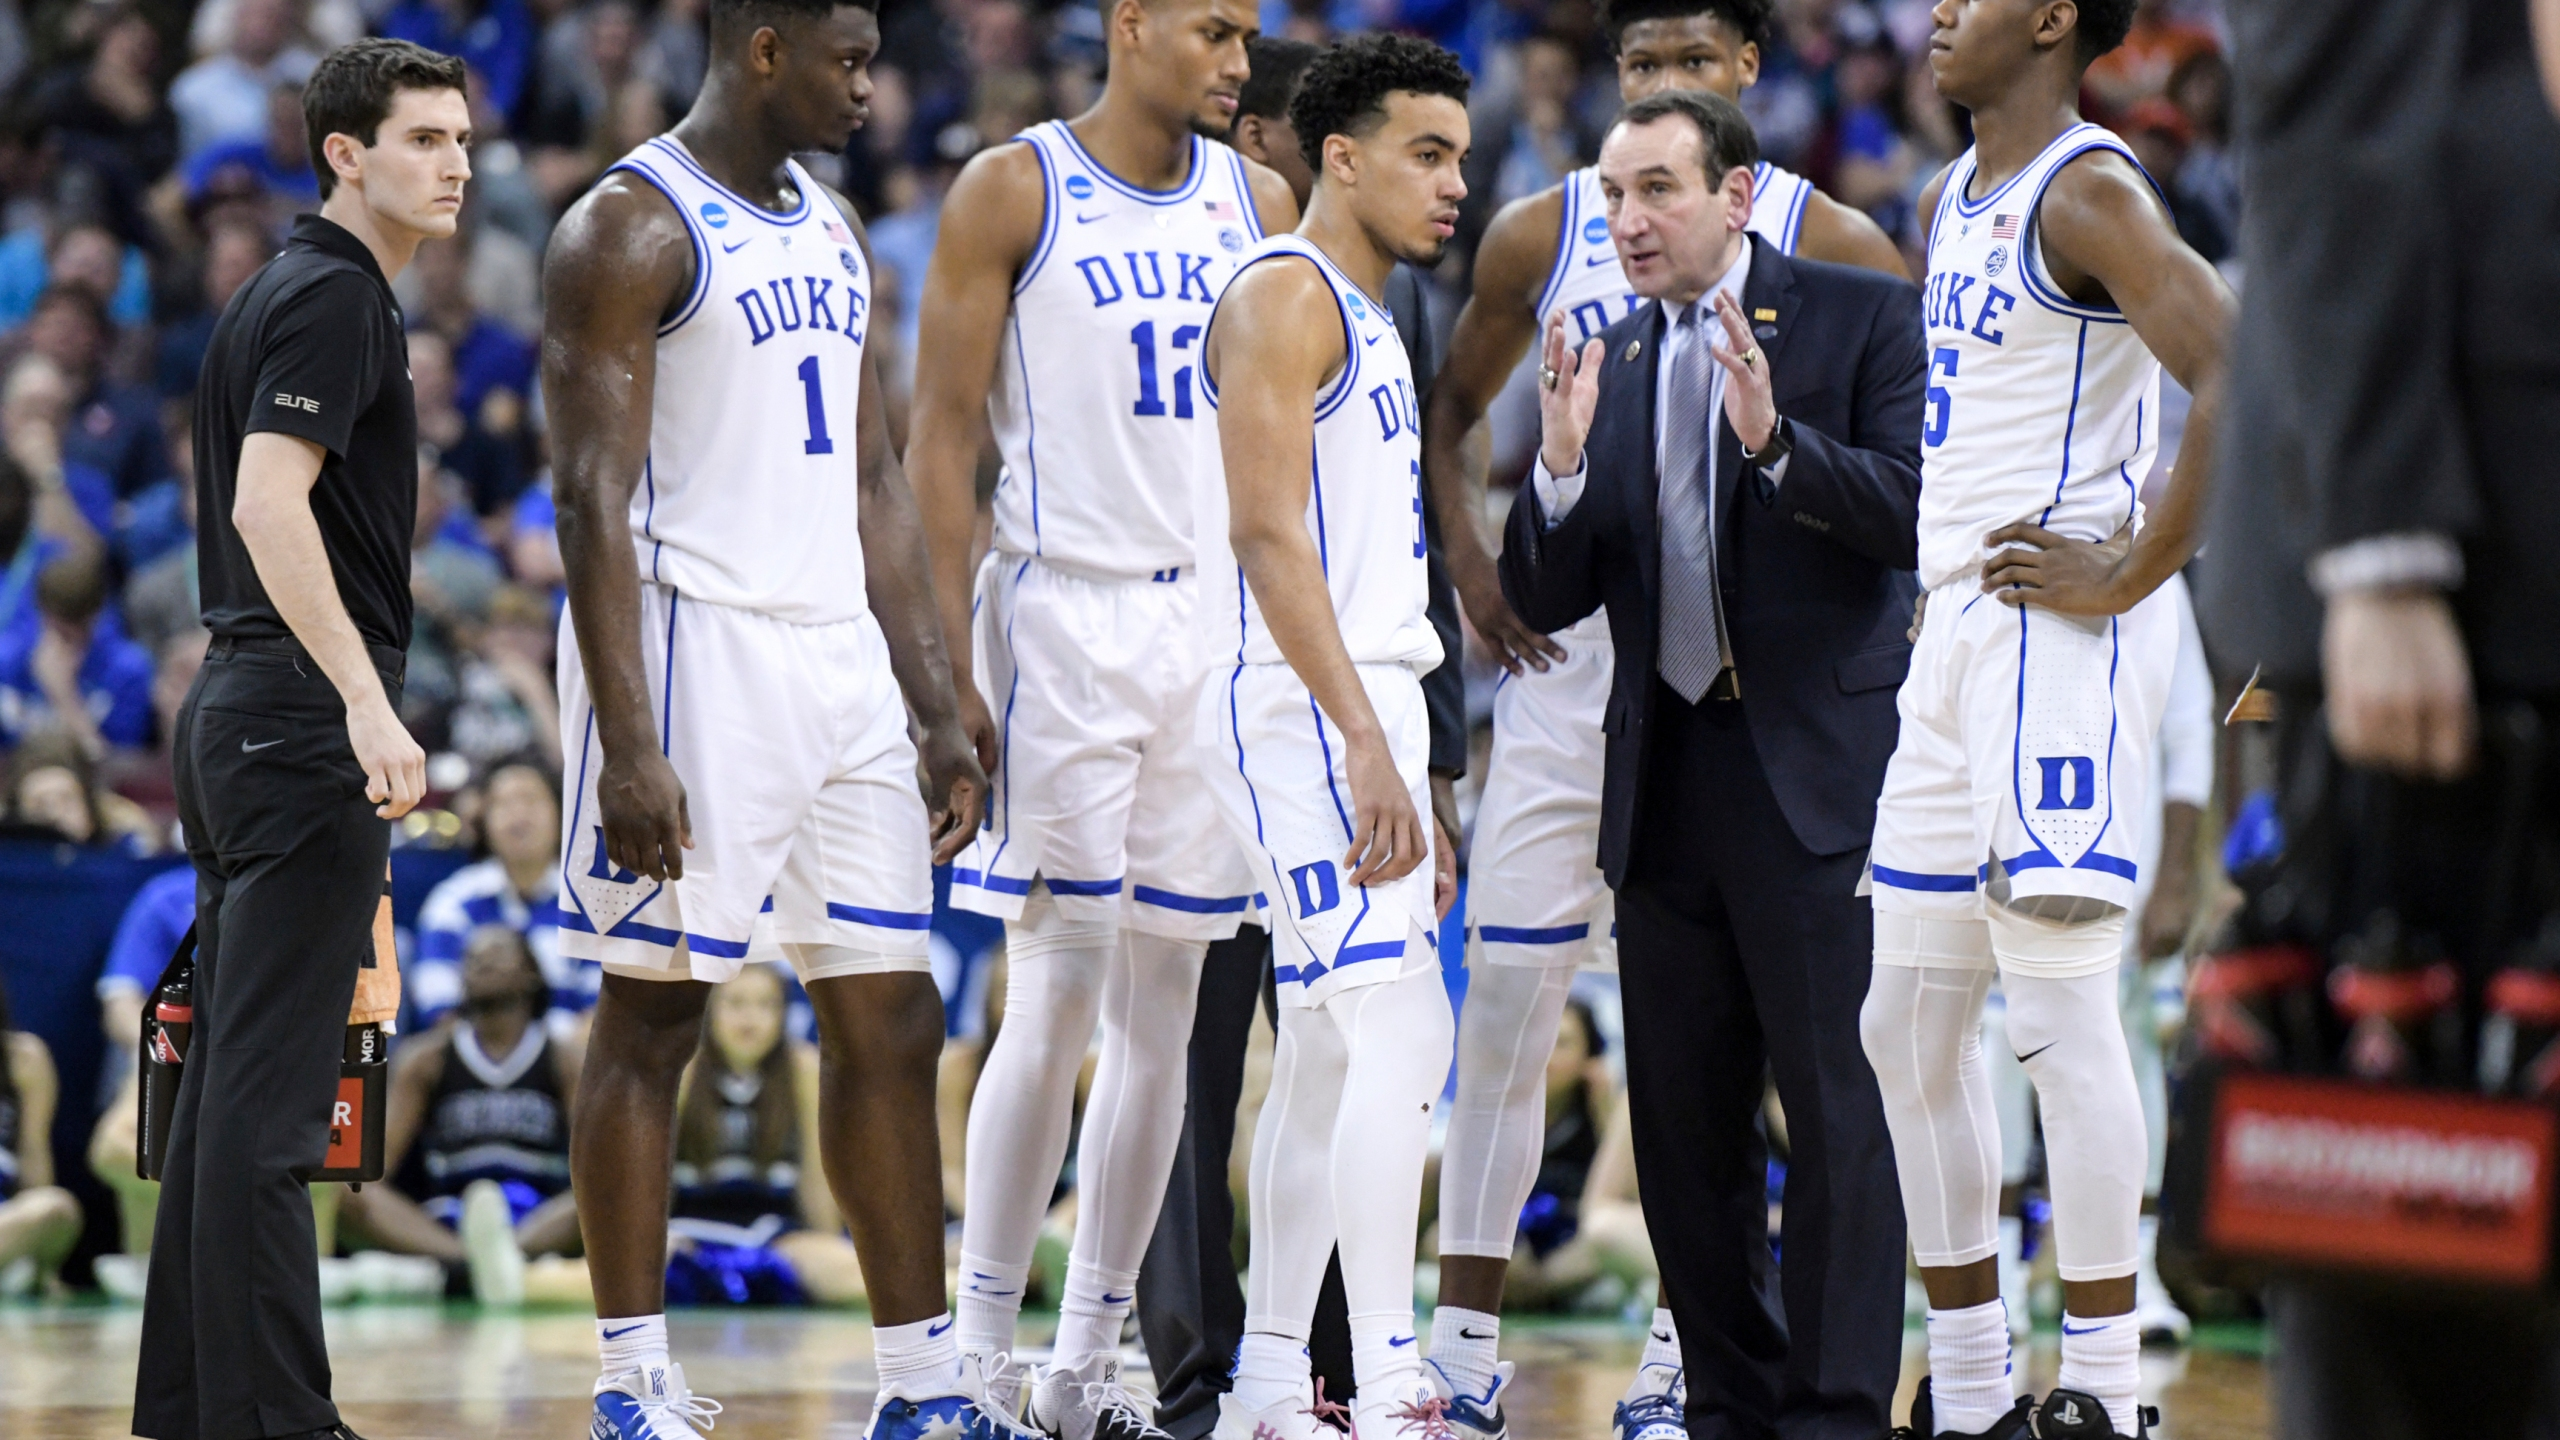 NCAA_UCF_Duke_Basketball_19048-159532-159532.jpg71288940